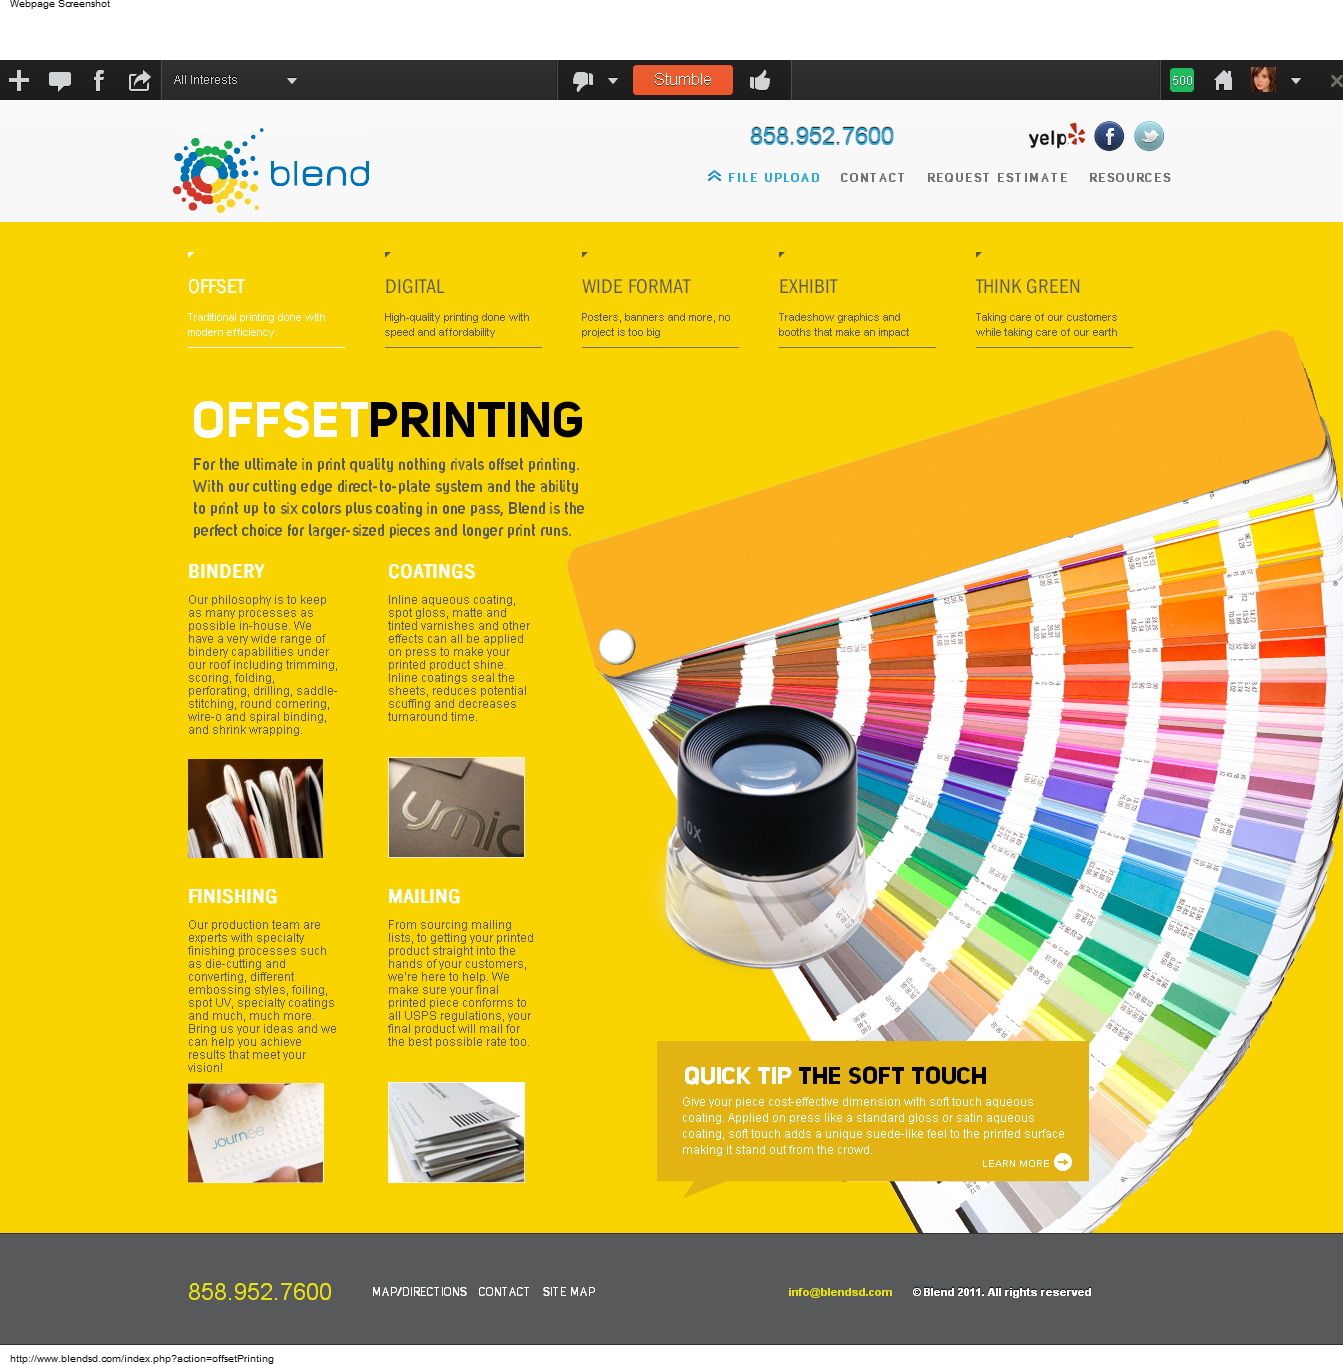 Offset printing service company san diego custom business card san offset printing service company san diego custom business card san diego printers reheart Image collections